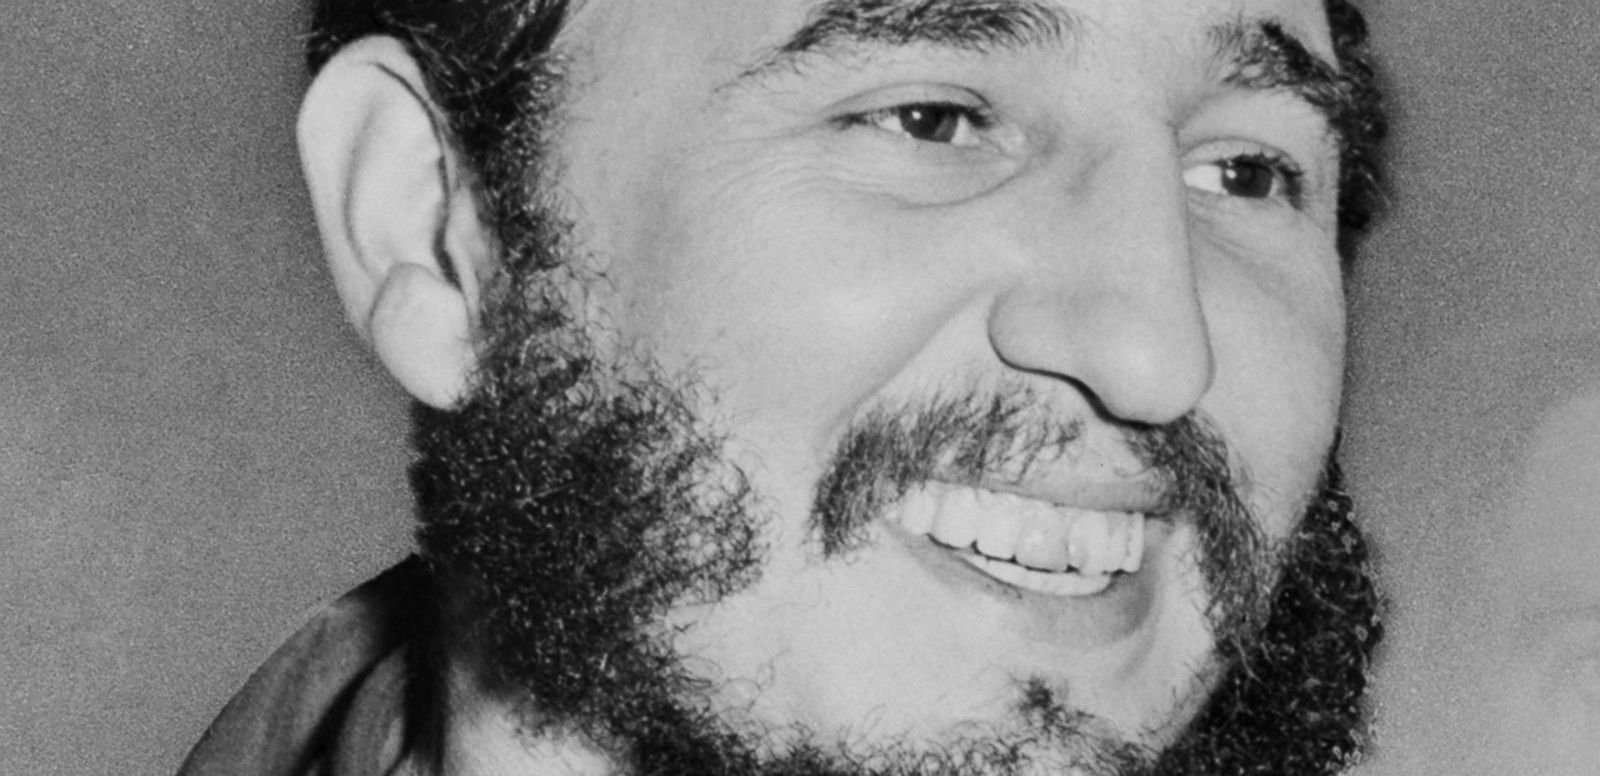 VIDEO: Barbara Walters On Fidel Castro Promising to Shave His Beard